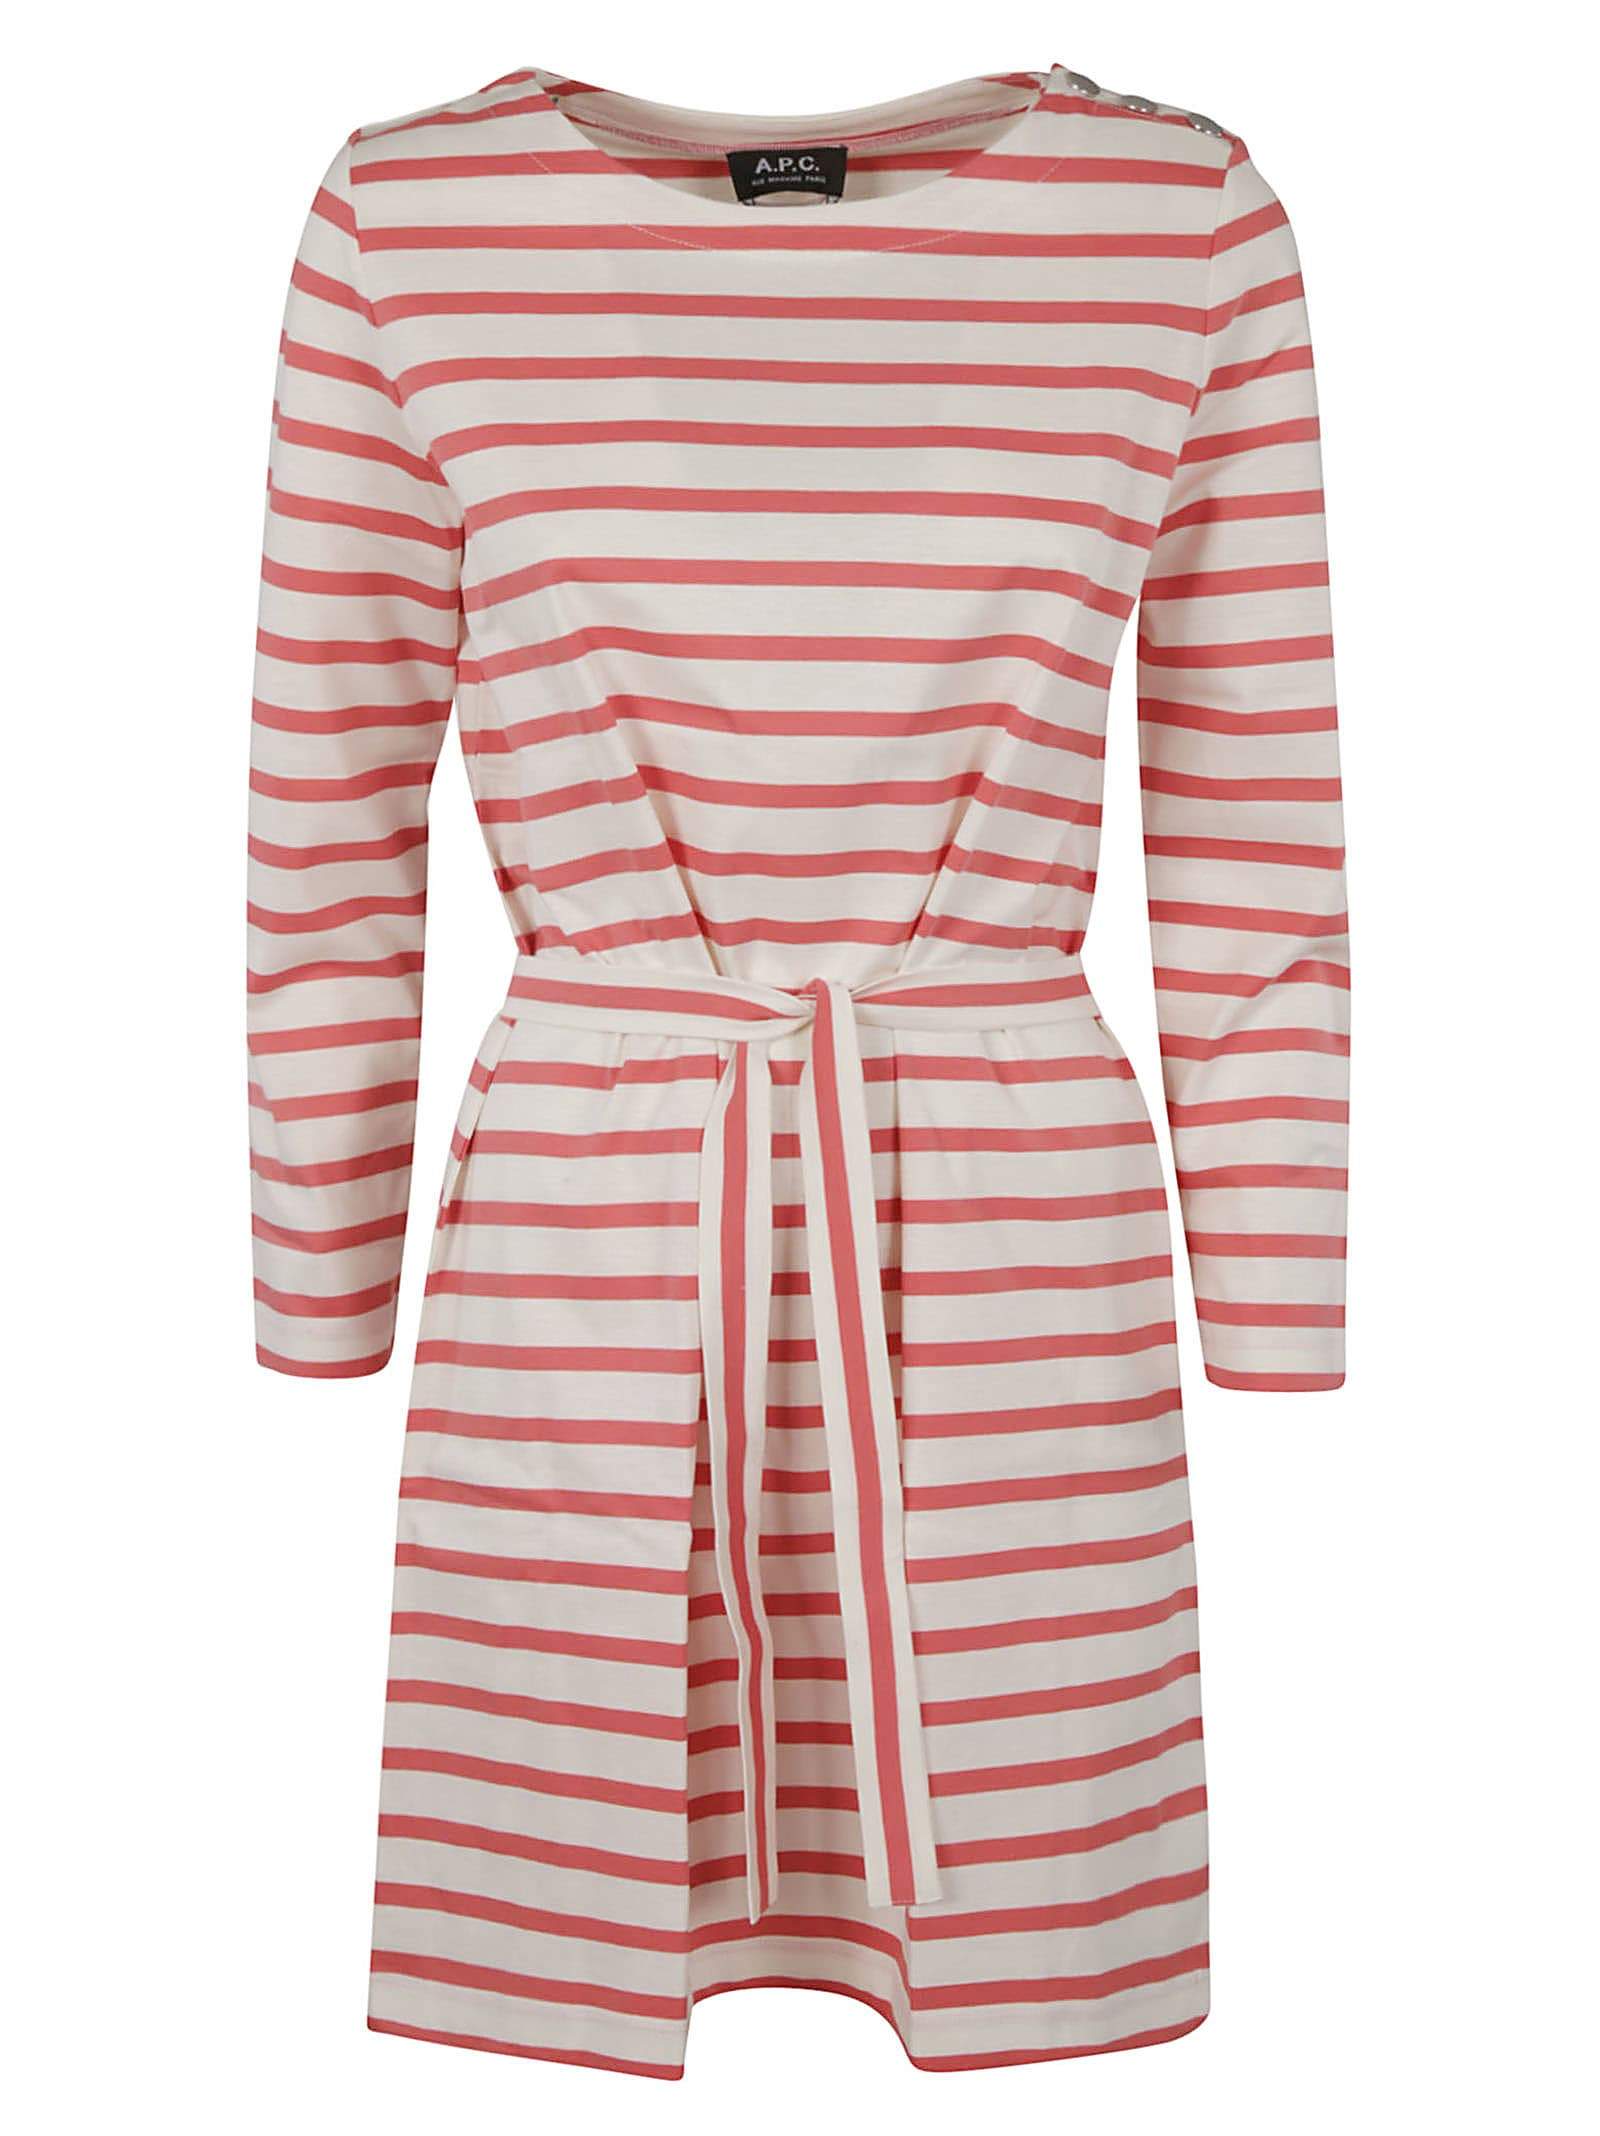 Buy A.P.C. Florence Dress online, shop A.P.C. with free shipping